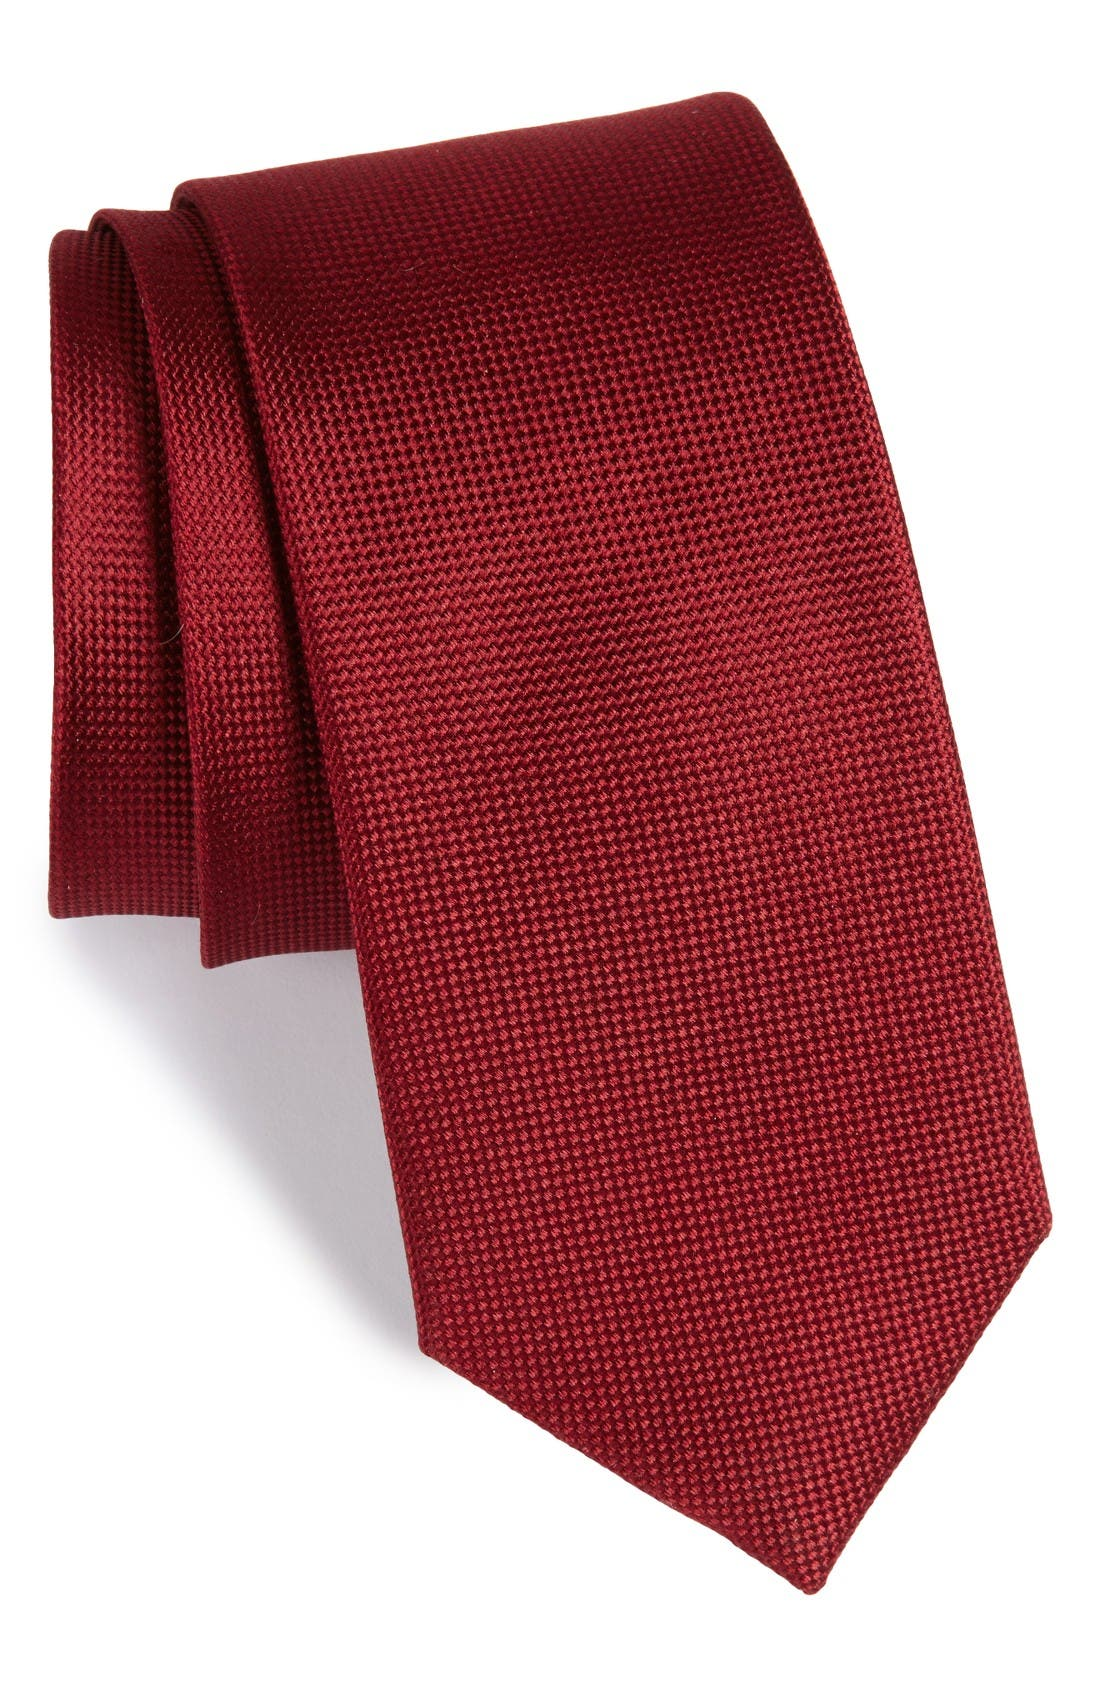 Solid Silk Tie,                             Main thumbnail 1, color,                             Burgundy